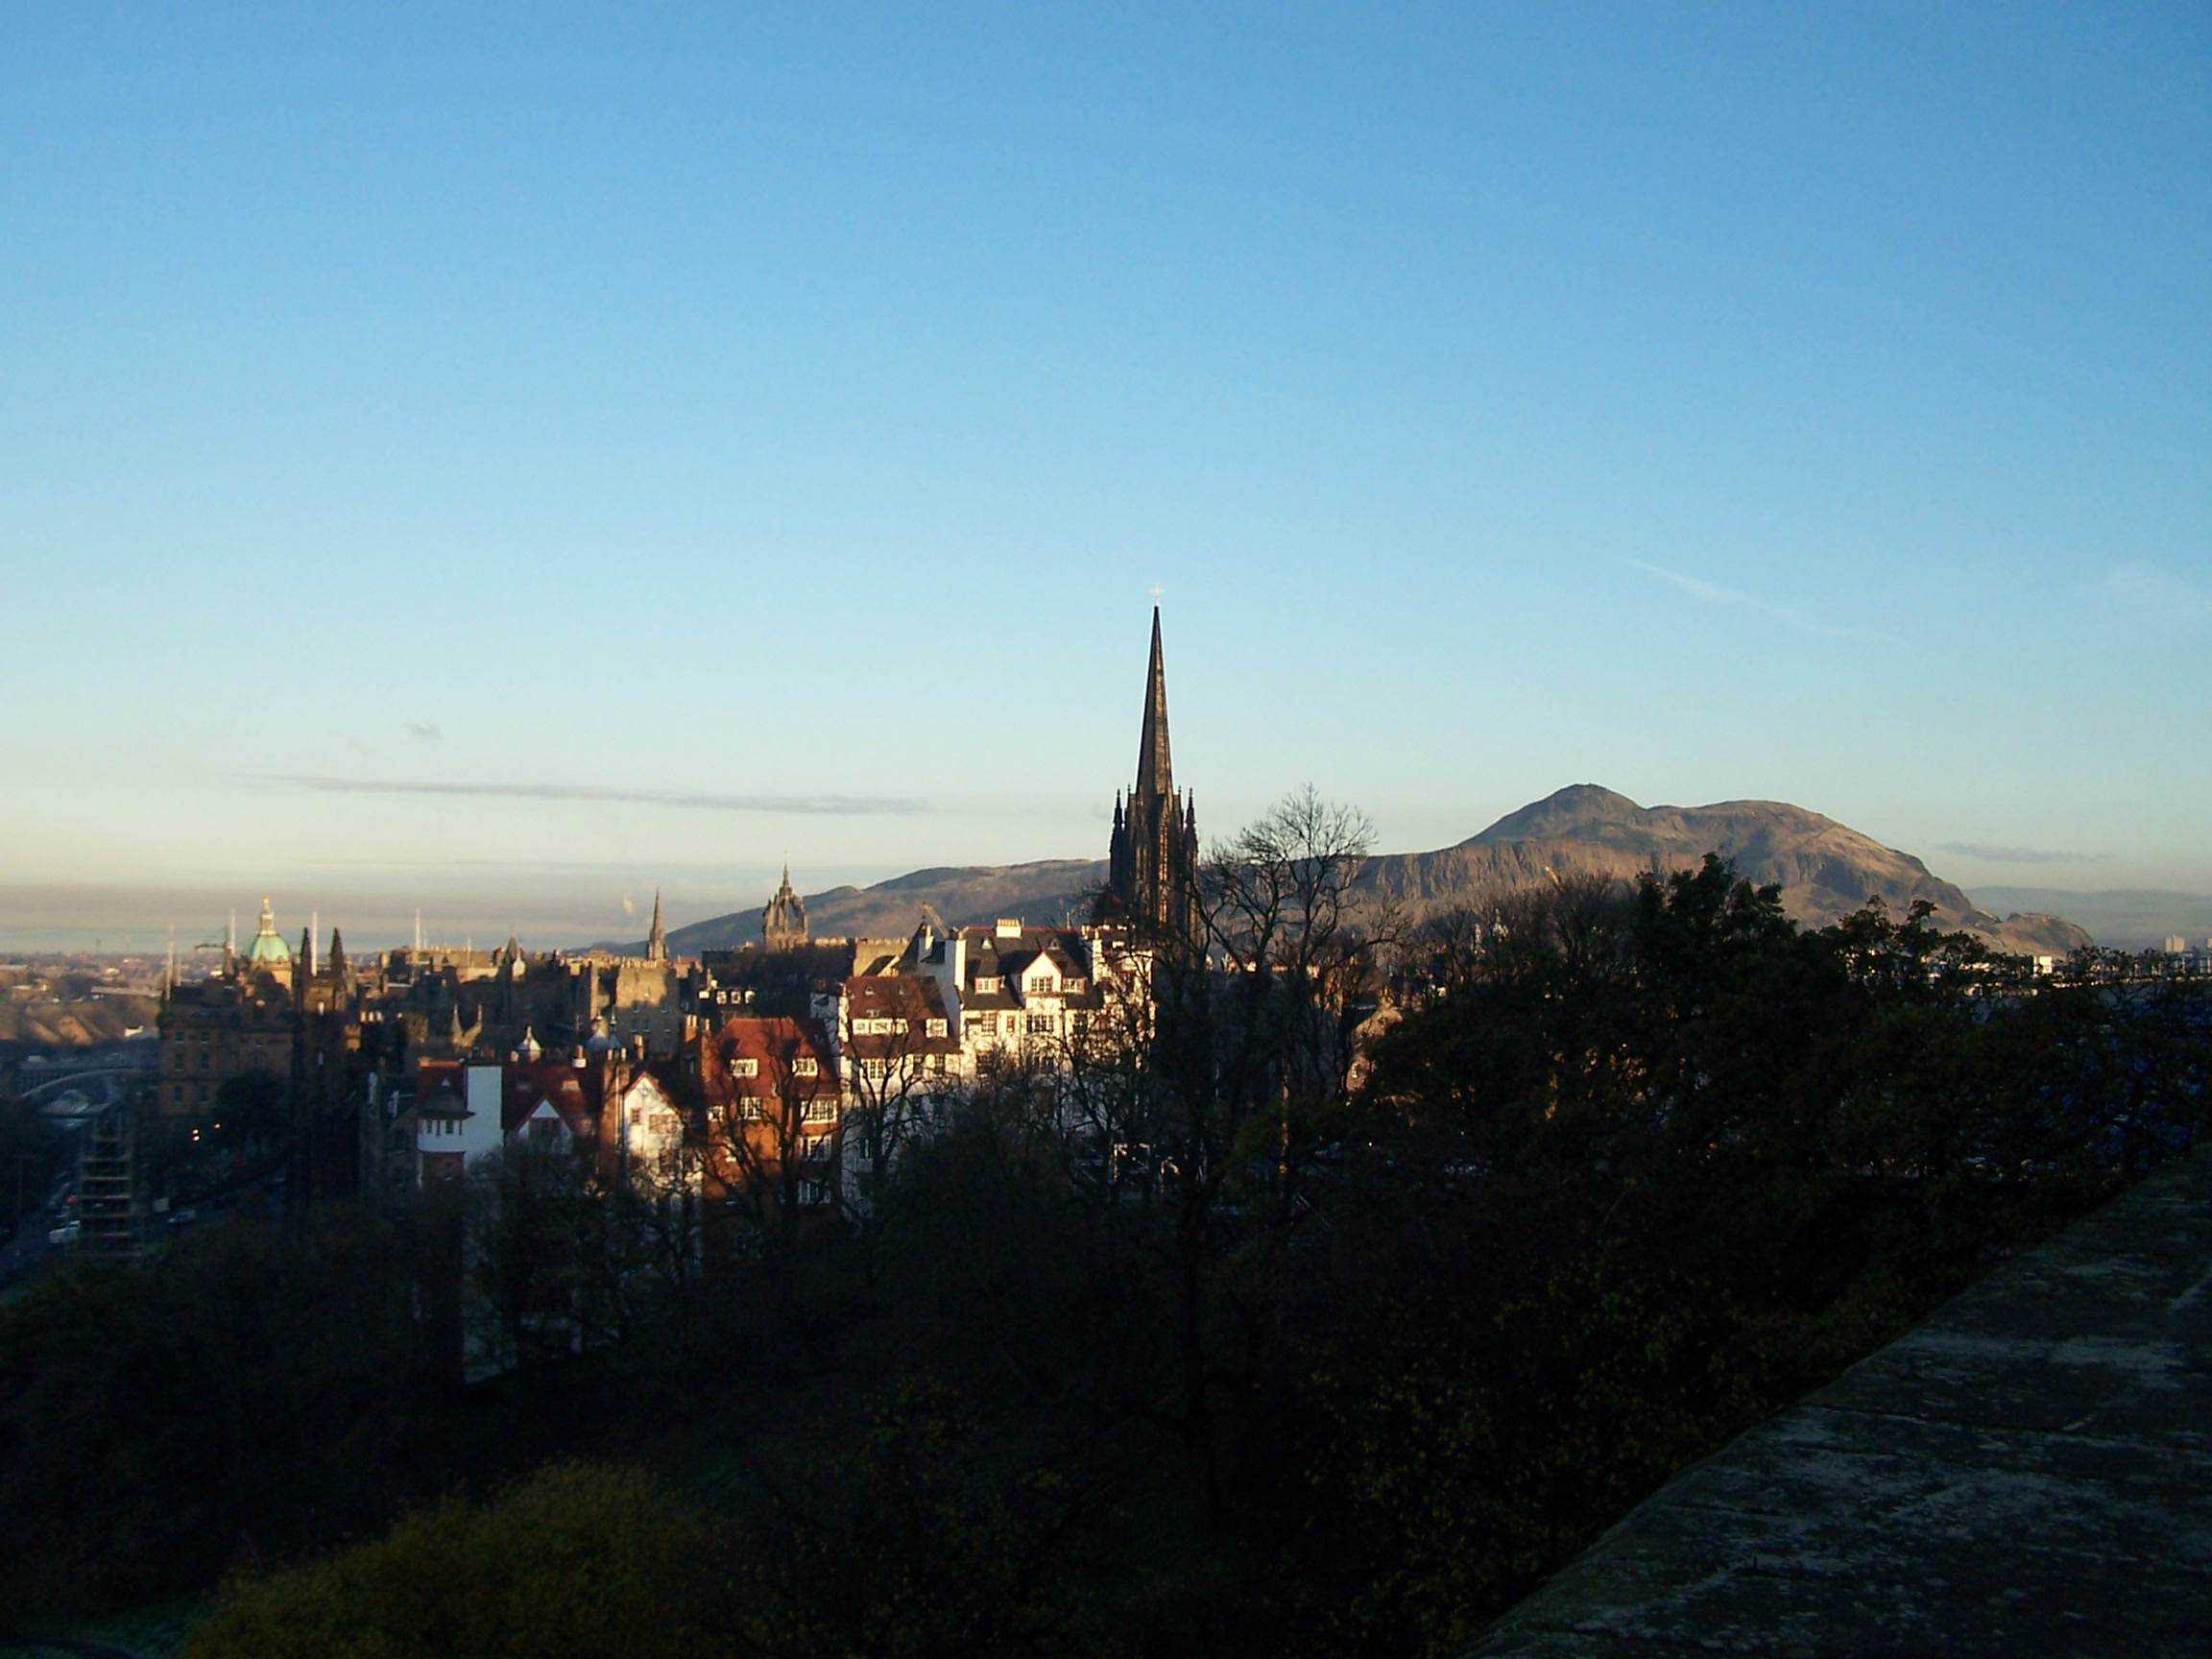 View of Scotland